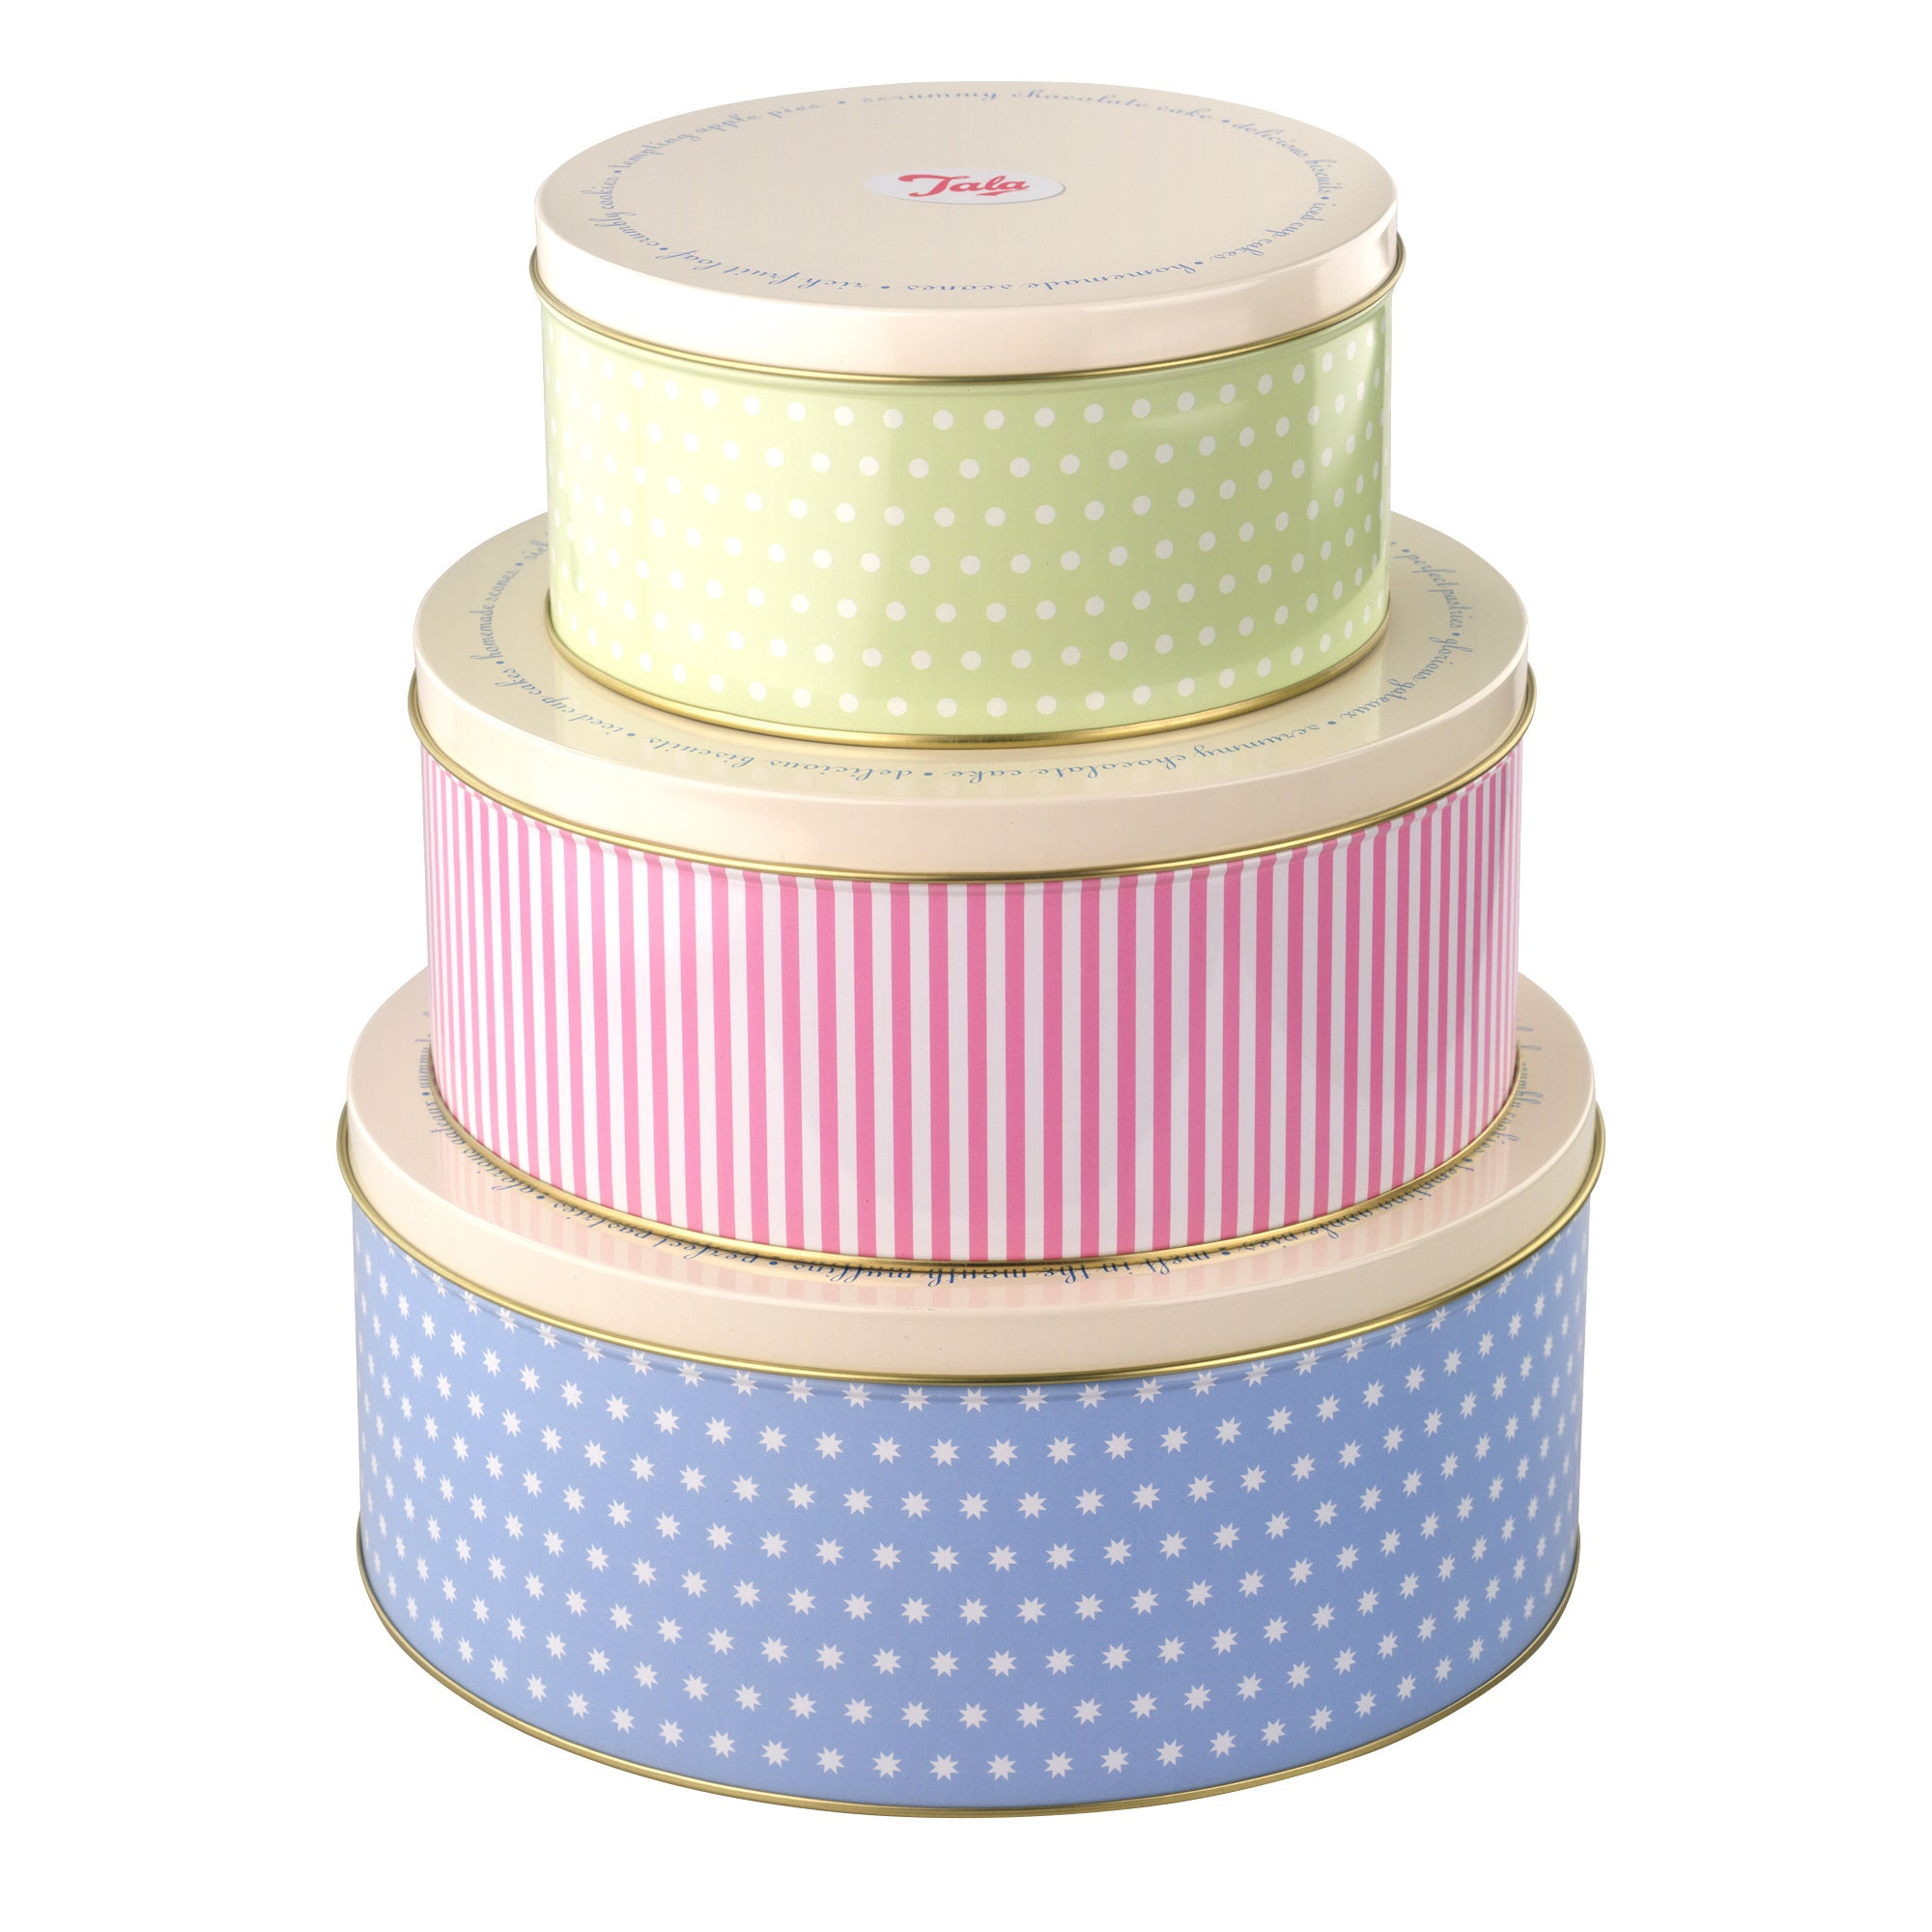 Tala Set of 3 Retro Cake Tins